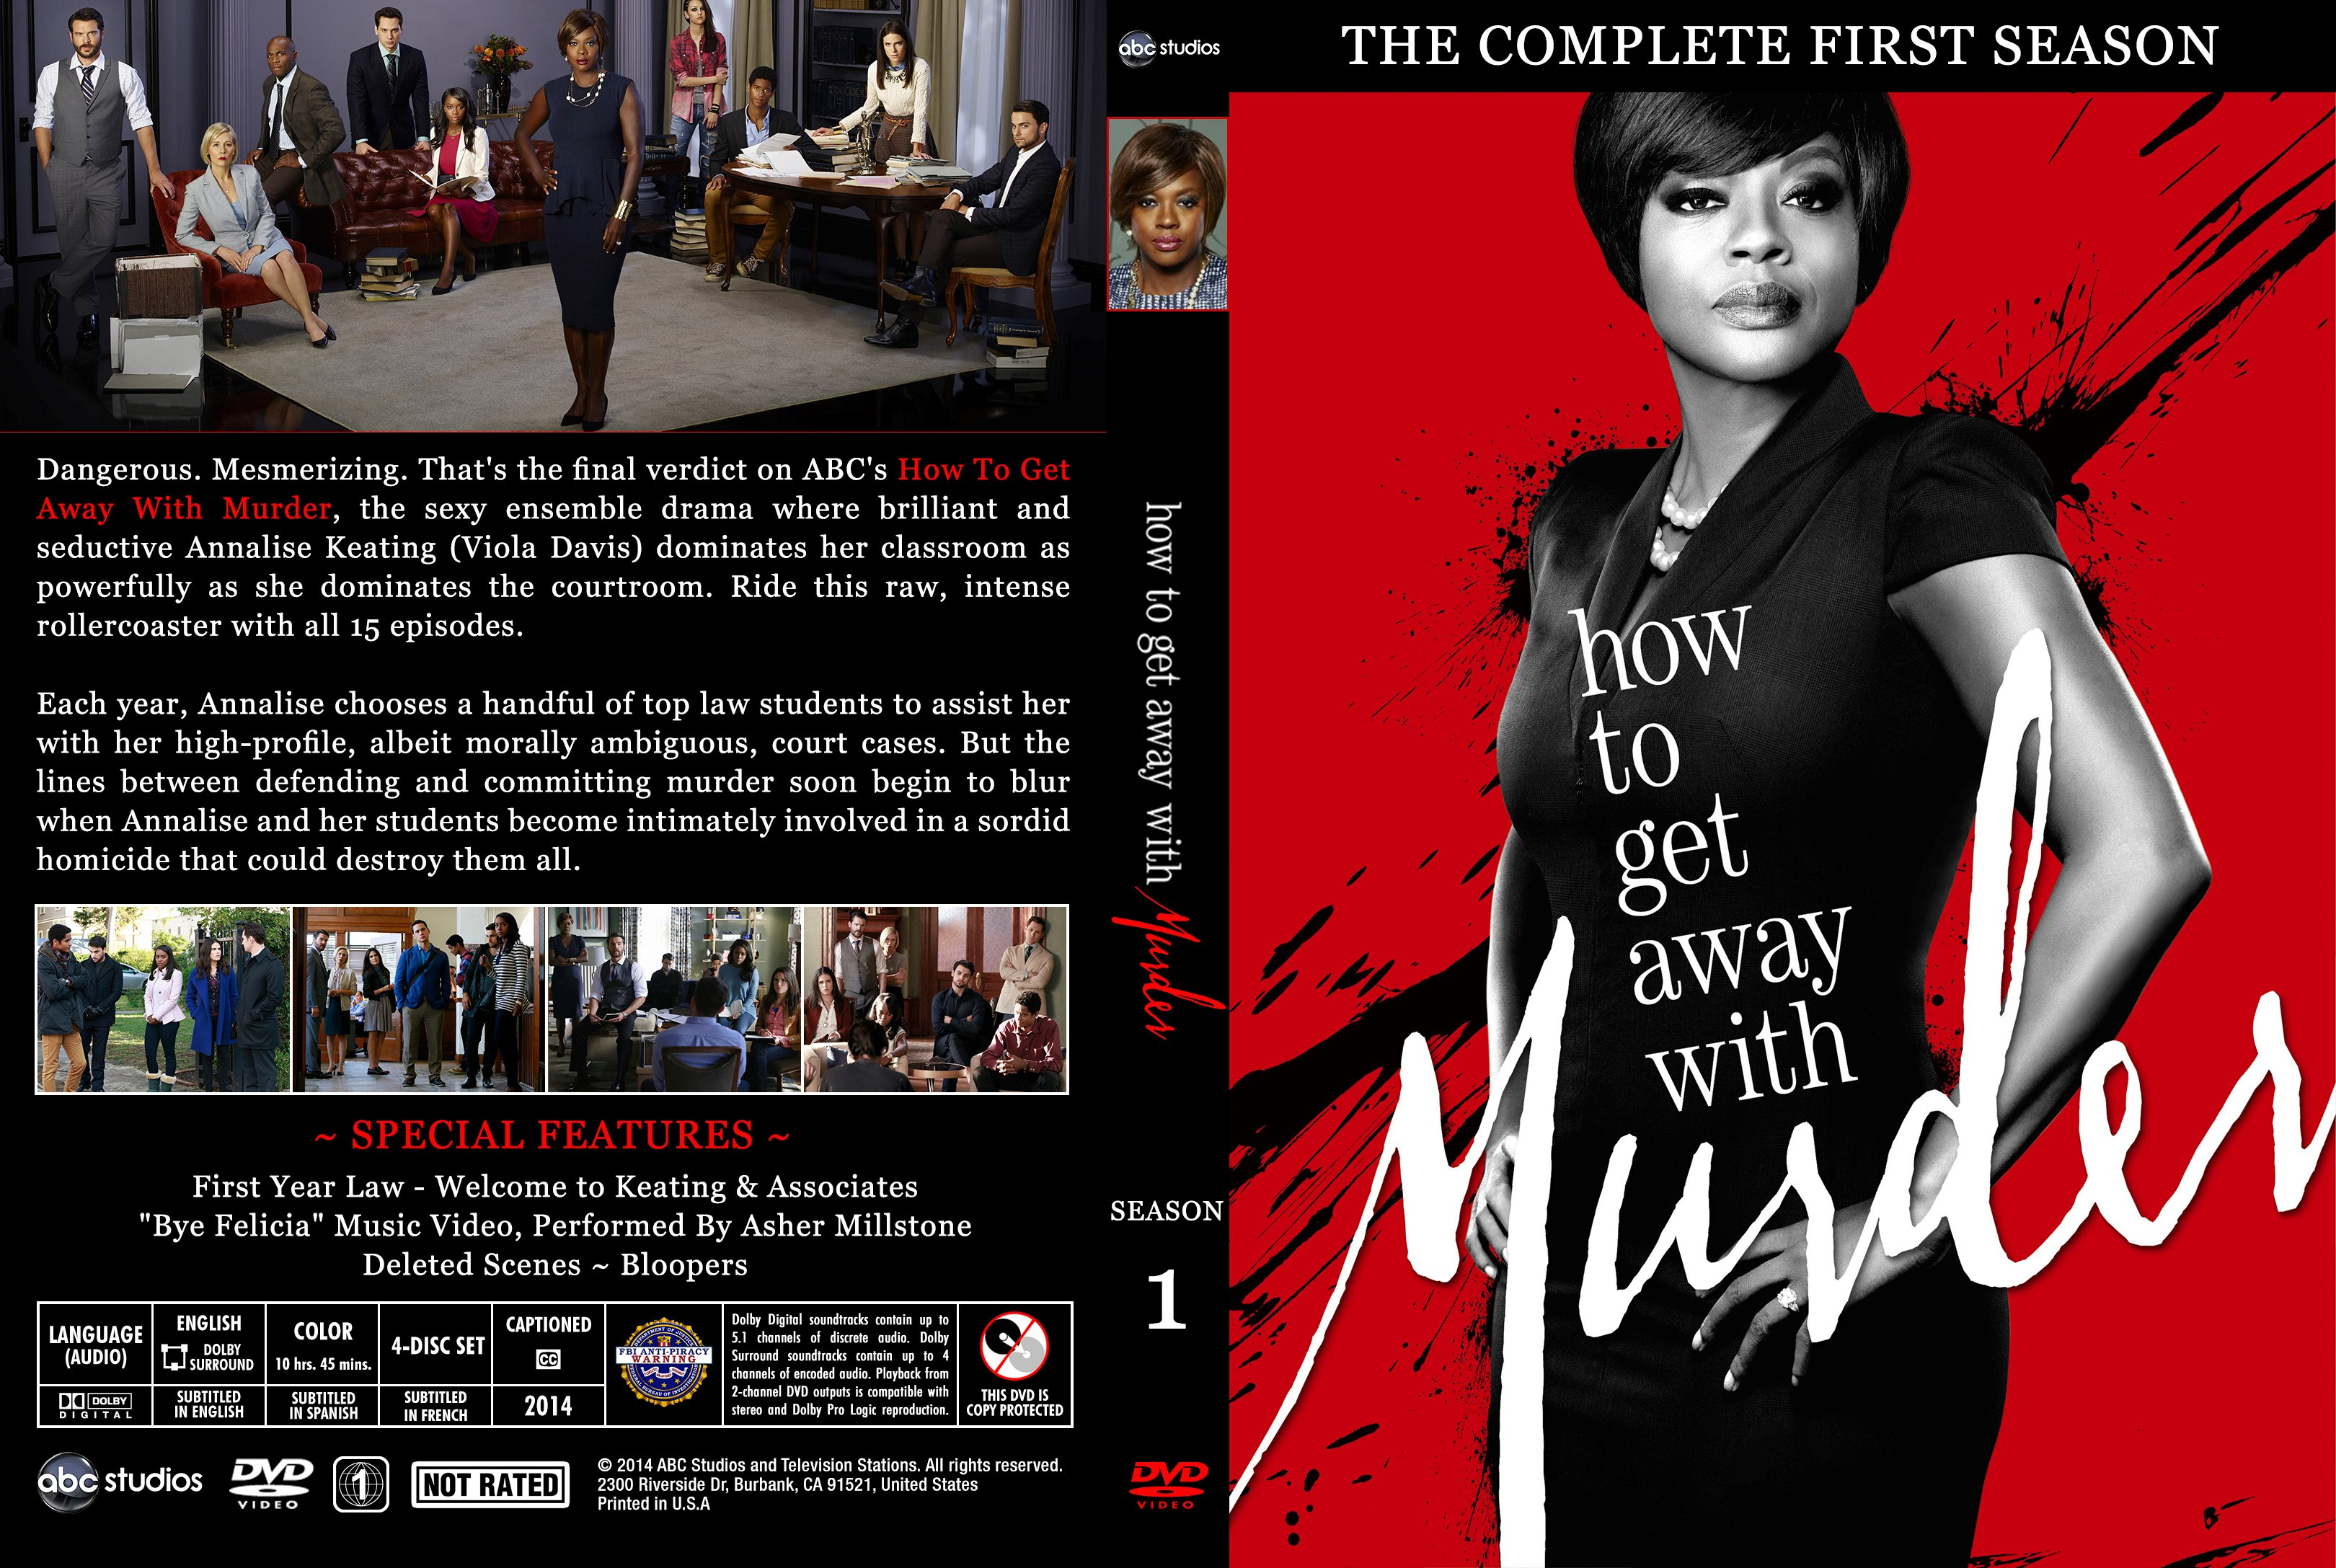 How To Get Away With Murder Season 1 DVD Cover - Cover ... - photo#42